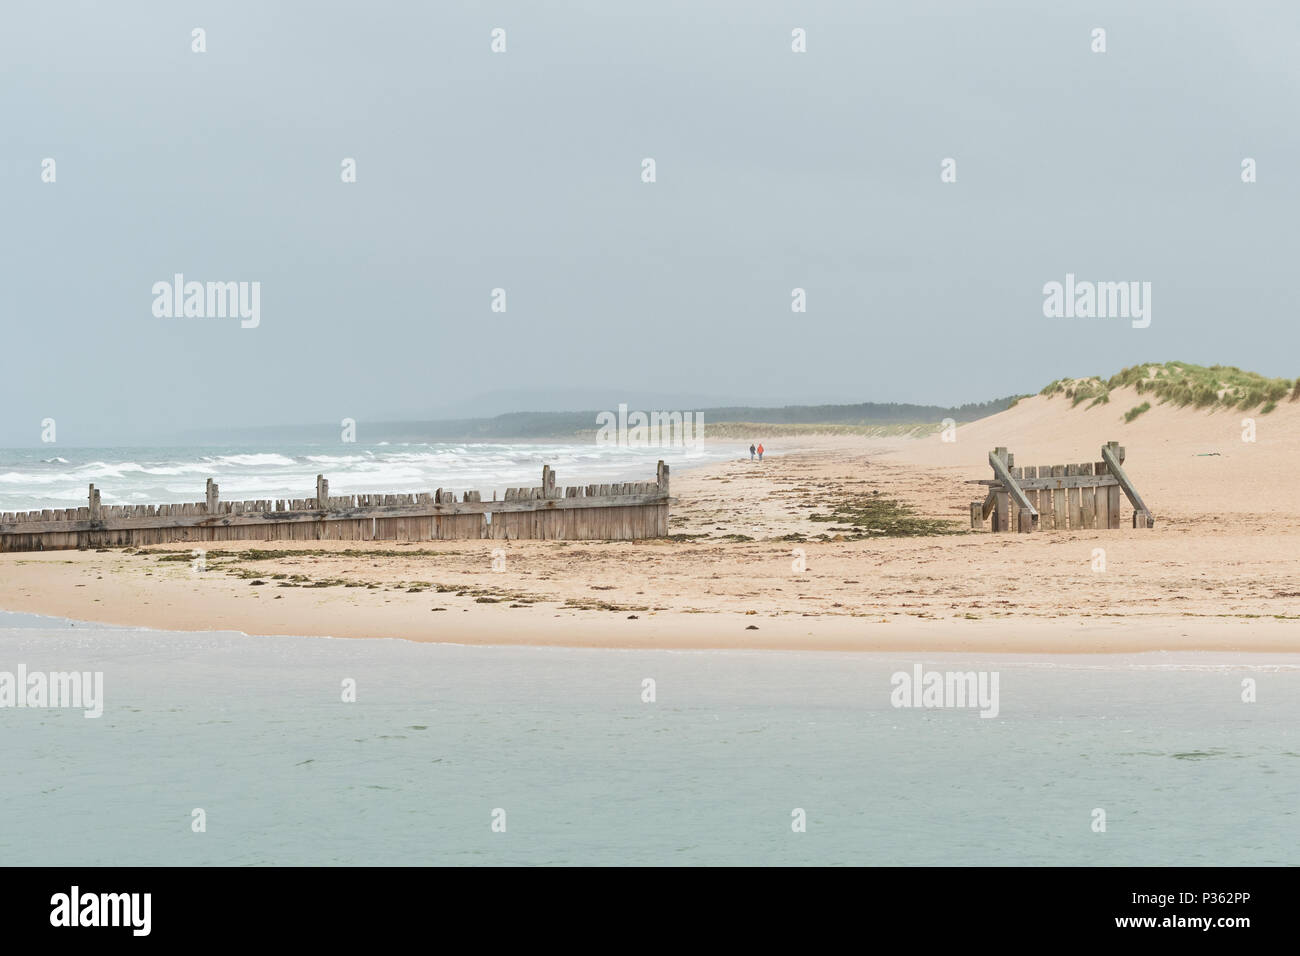 Lossiemouth - couple in distance walking along Lossiemouth East Beach towards wooden groynes and the River Lossie, Moray, Scotland, UK - Stock Image